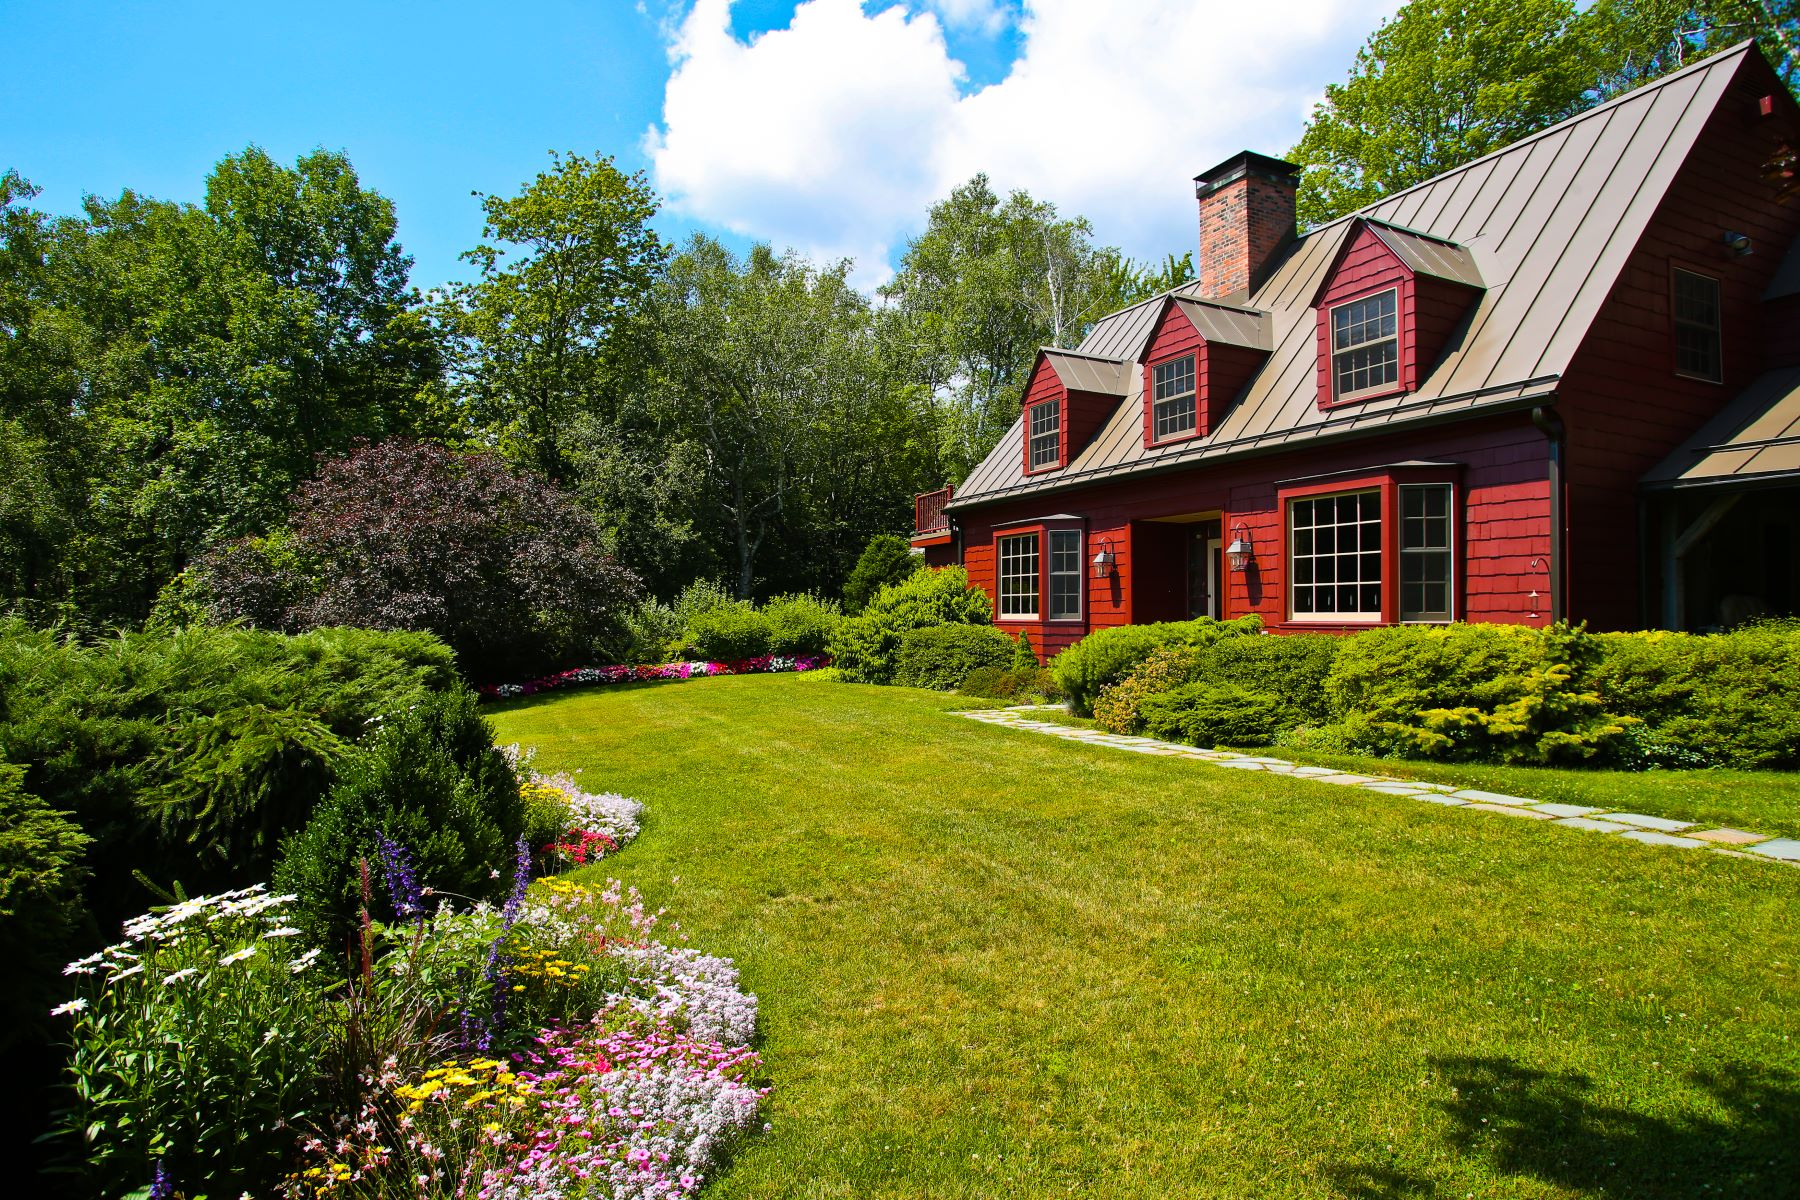 Casa Unifamiliar por un Venta en 100 Acre Family Compound: Stream, Ponds, Stables with Guesthouse 759 Hancock Rd Williamstown, Massachusetts 01267 Estados Unidos